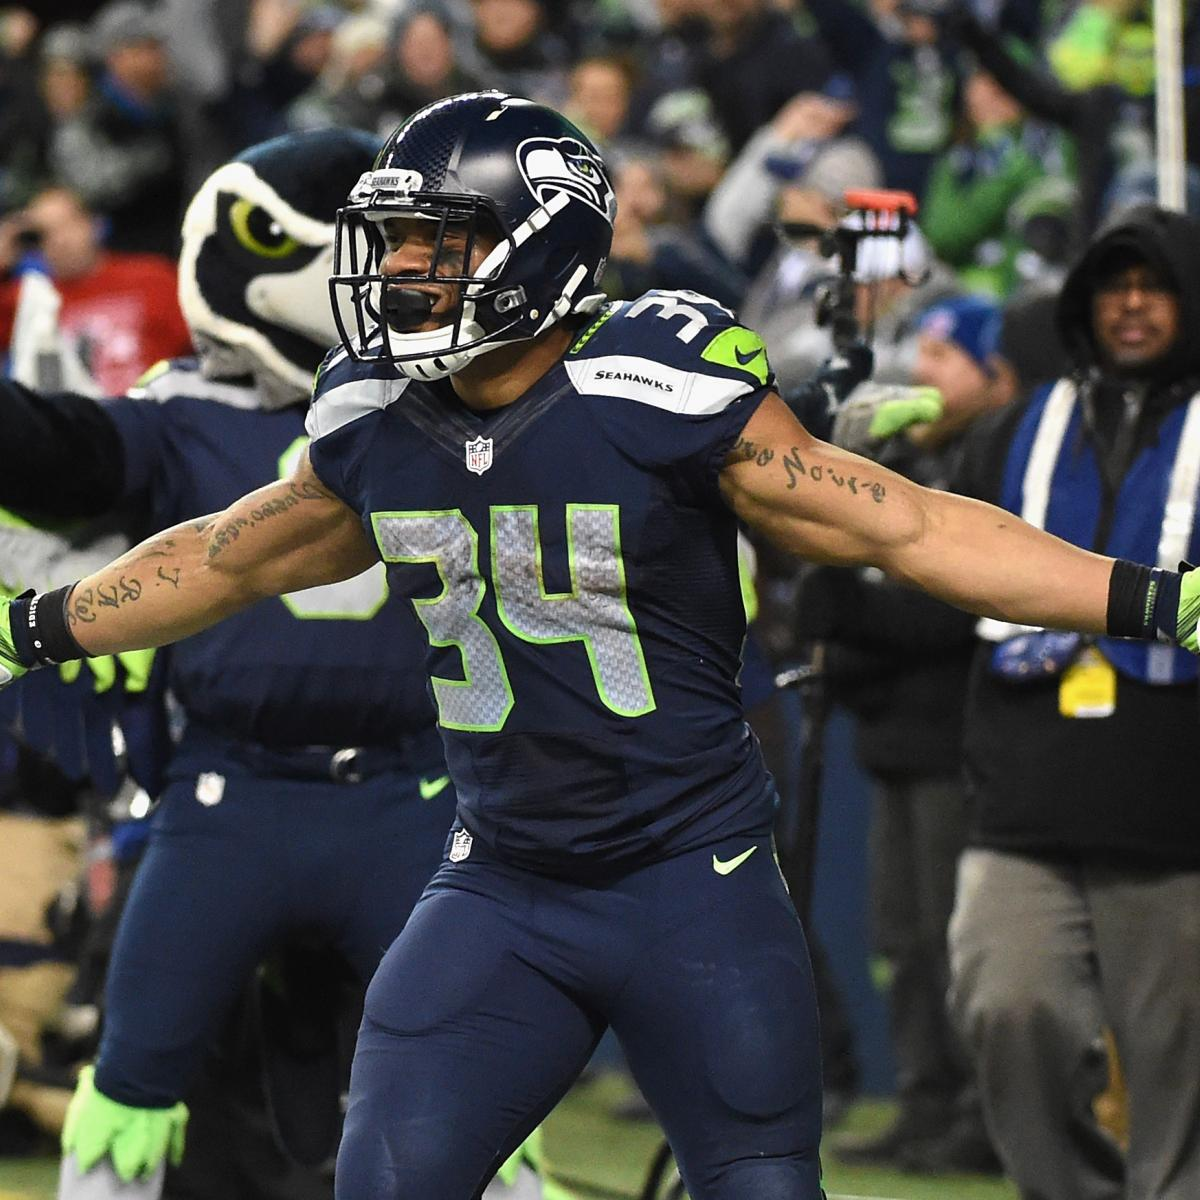 Seahawks Running Game Looks O.K. With Rawls - NYTimes.com